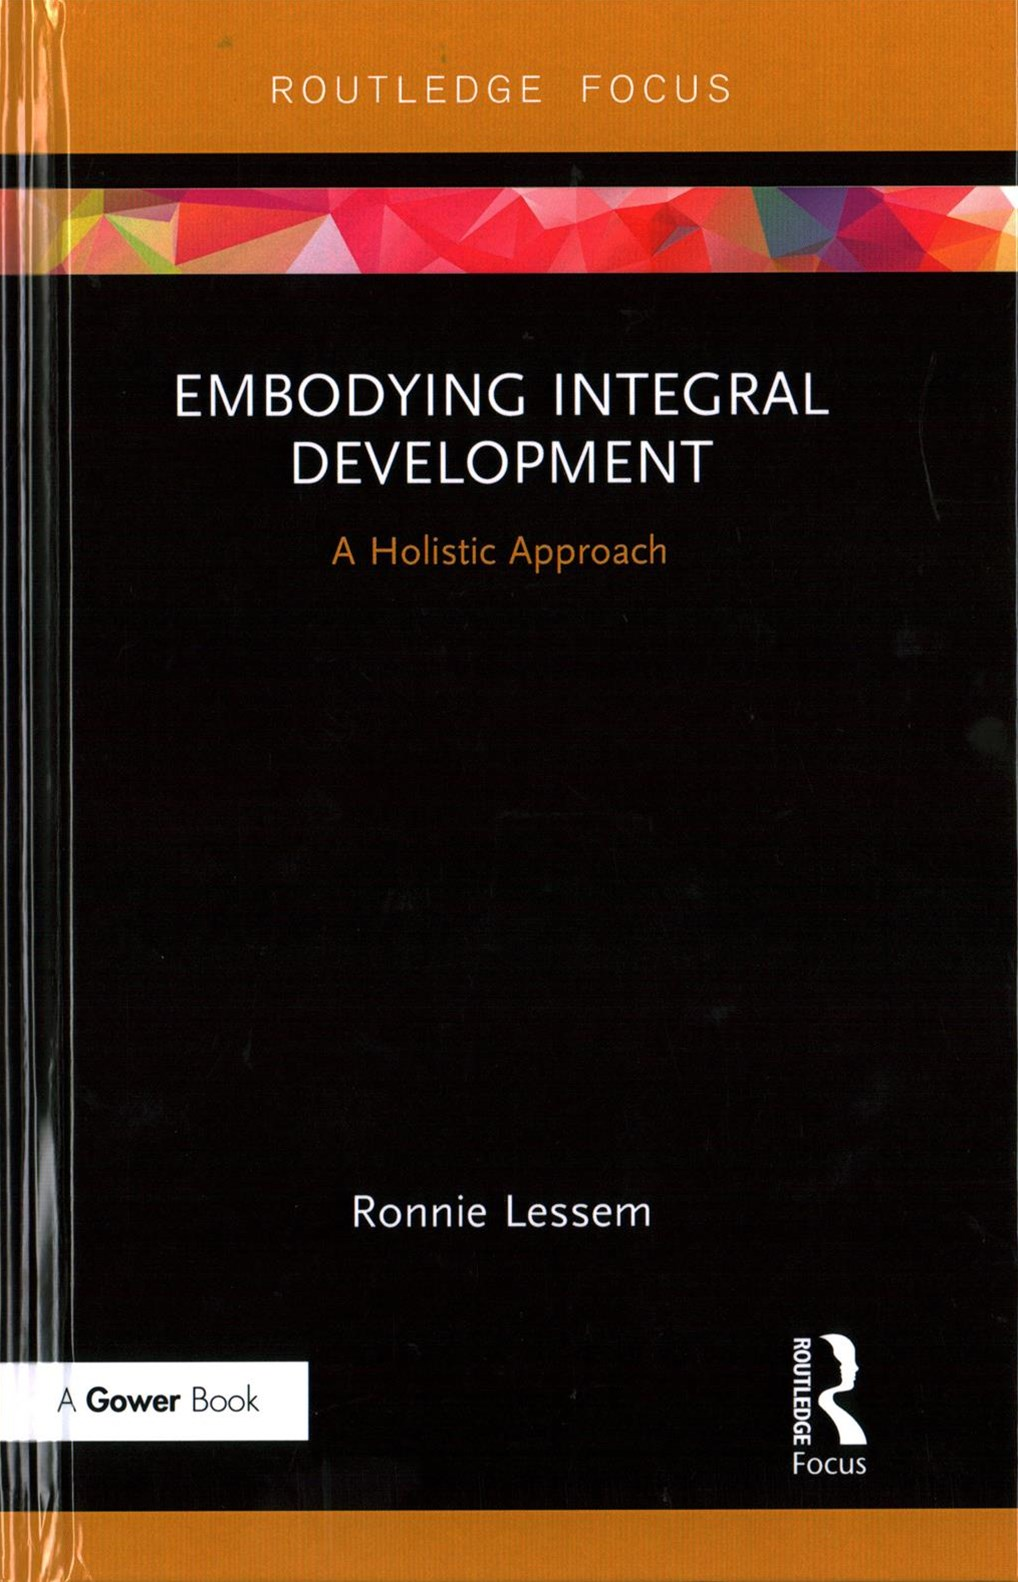 Embodying Integral Development